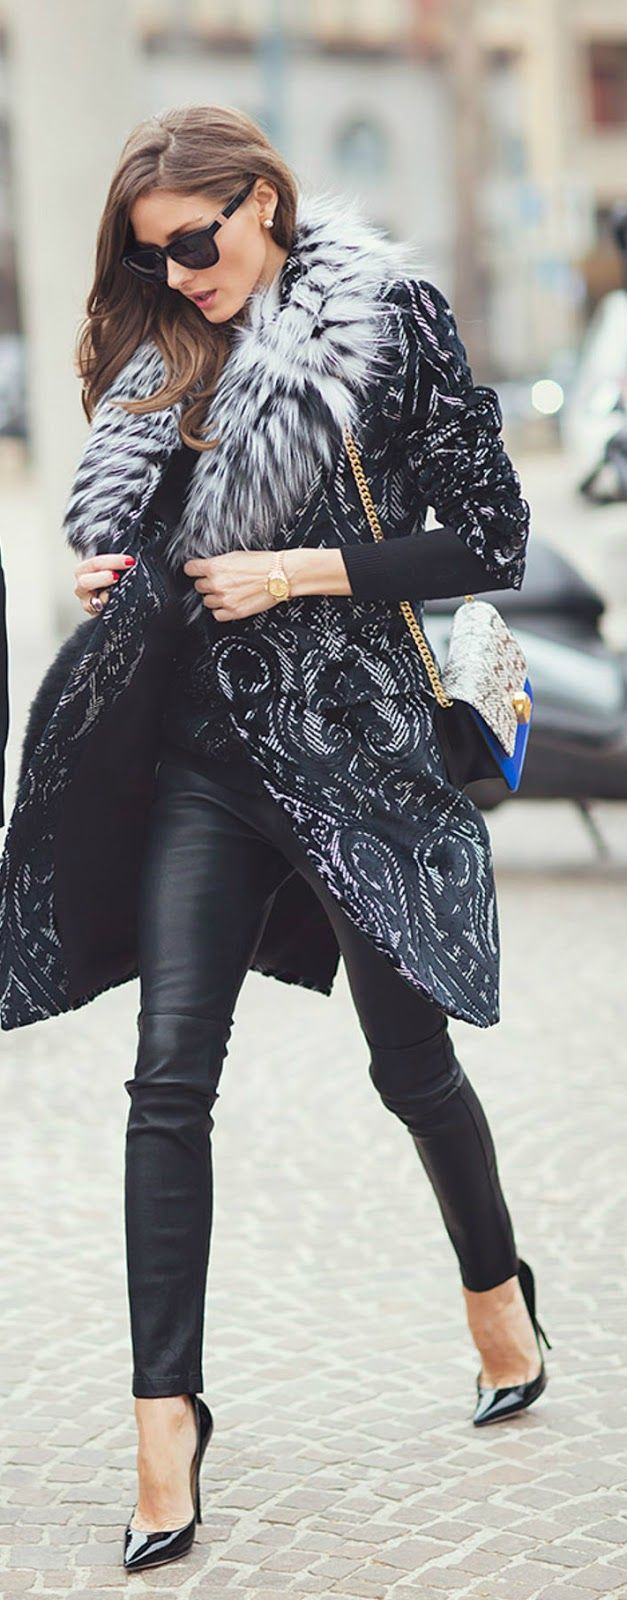 The Olivia Palermo Lookbook : MFW 2013: Olivia Palermo at Roberto Cavalli